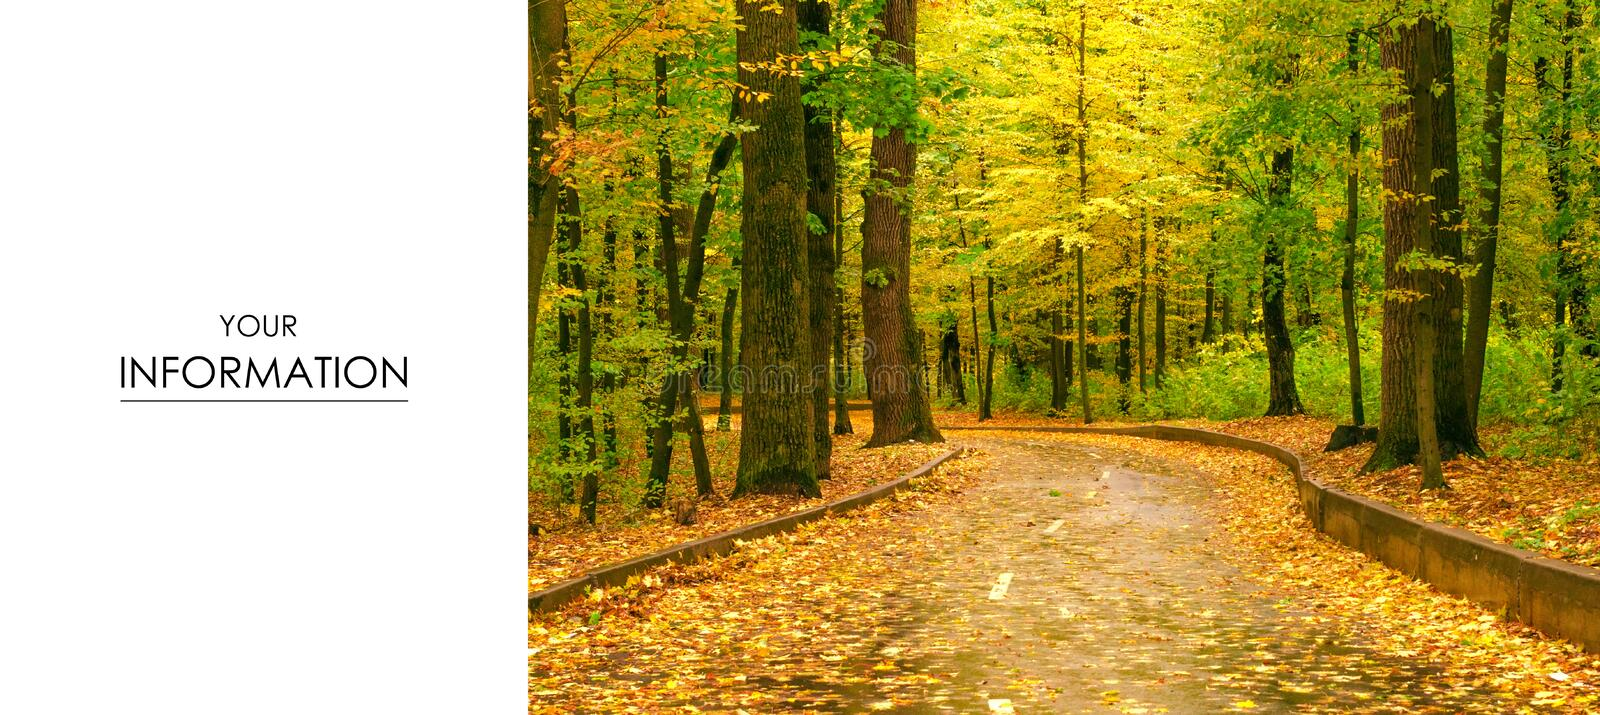 Autumn trees road landscape view of yellow red orange leaves royalty free stock images